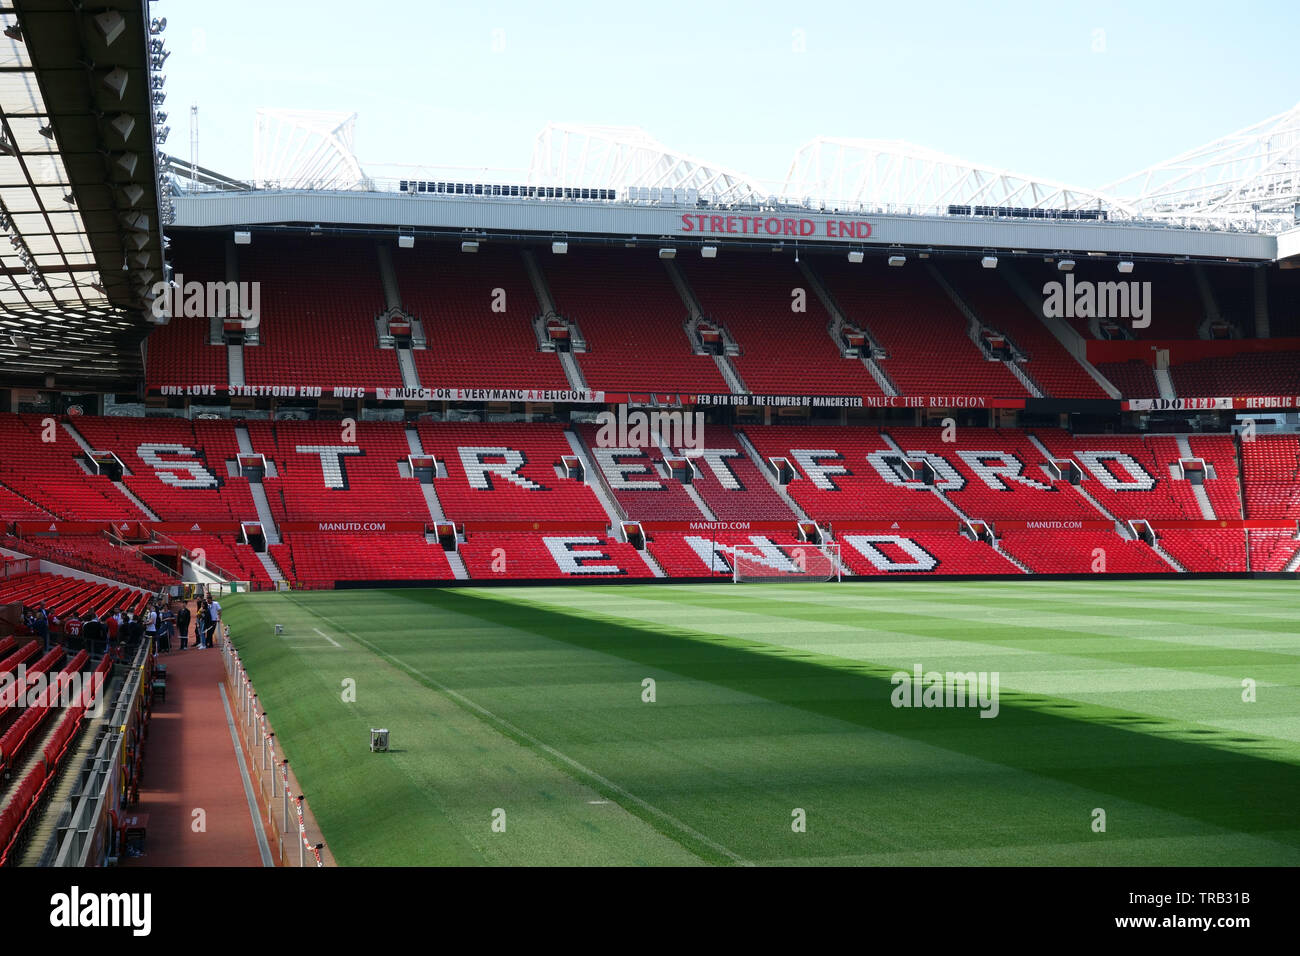 The Stretford Road End Stand at Old Trafford, Manchester United Football Club, Manchester, Lancashire, England, UK. - Stock Image